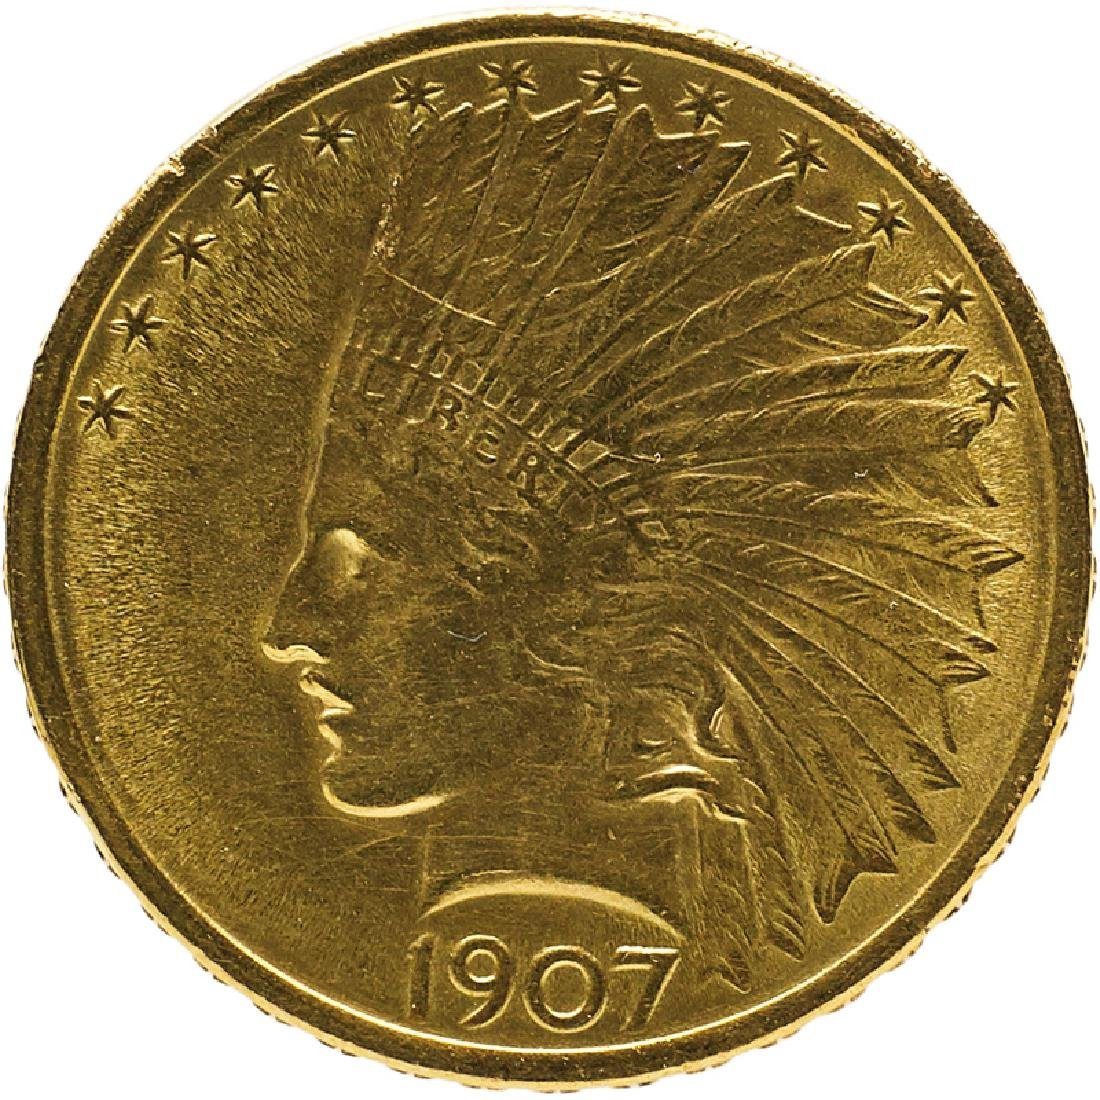 U.S. 1907 INDIAN $10 GOLD COIN